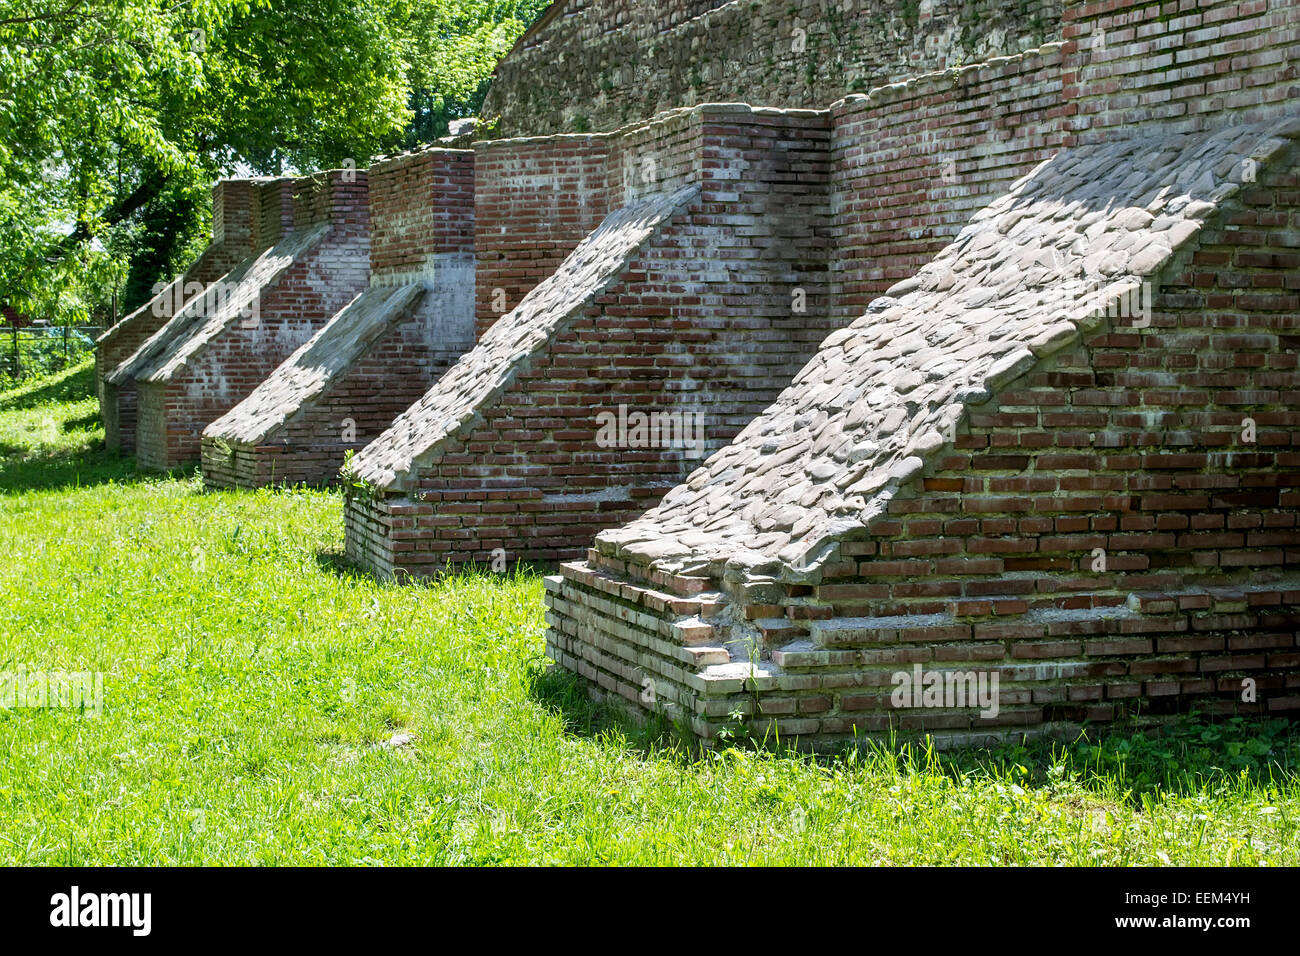 Buttress Wall Stock Photos & Buttress Wall Stock Images